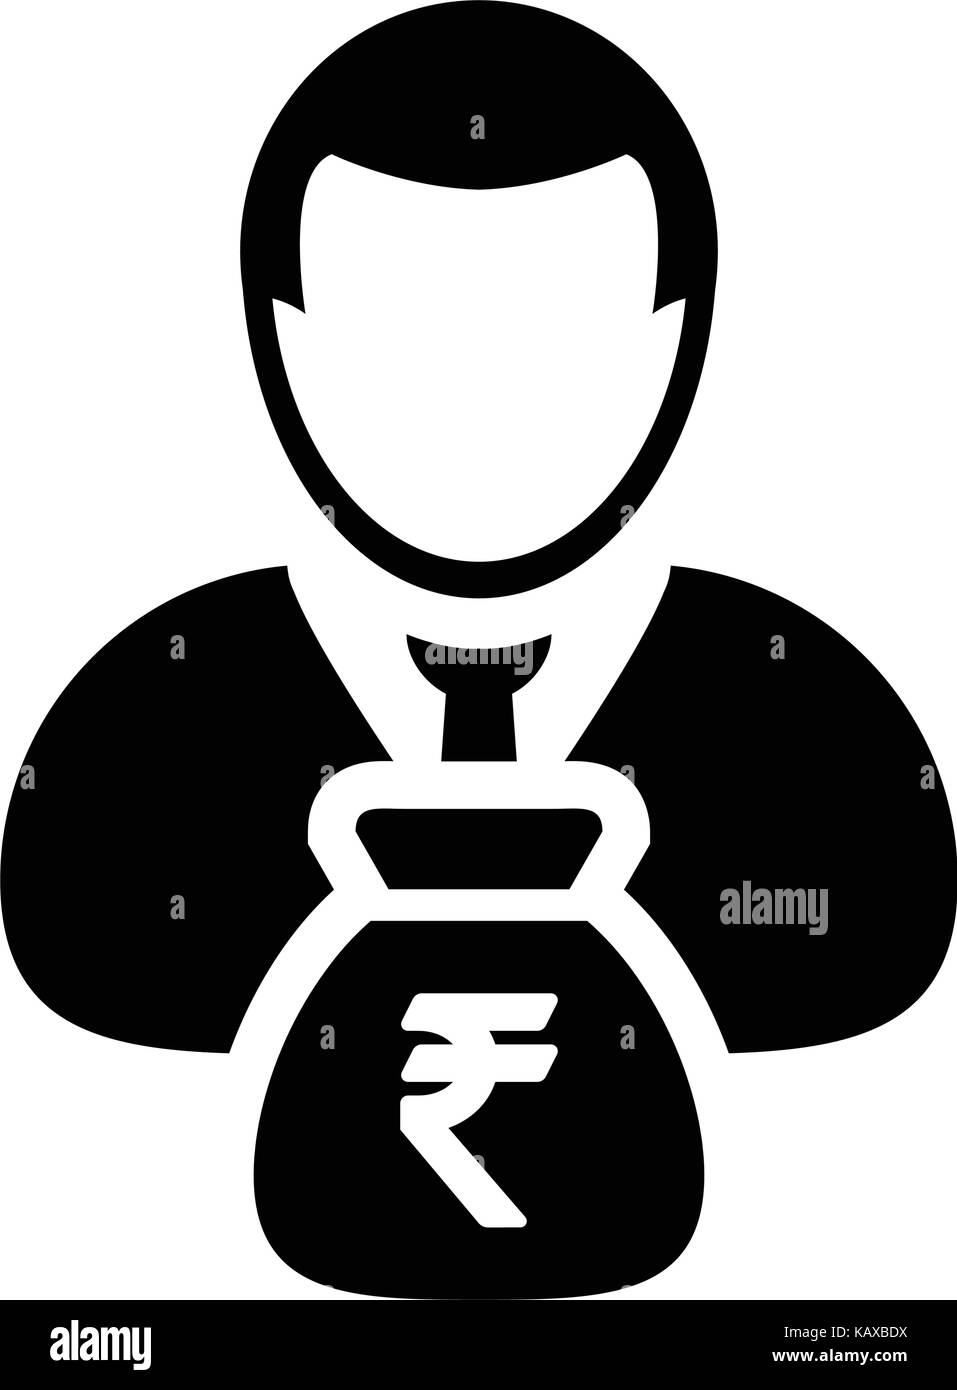 Indian rupee sign icon vector person male avatar symbol with money indian rupee sign icon vector person male avatar symbol with money bag for business finance and bank savings account in glyph pictogram illustration biocorpaavc Choice Image